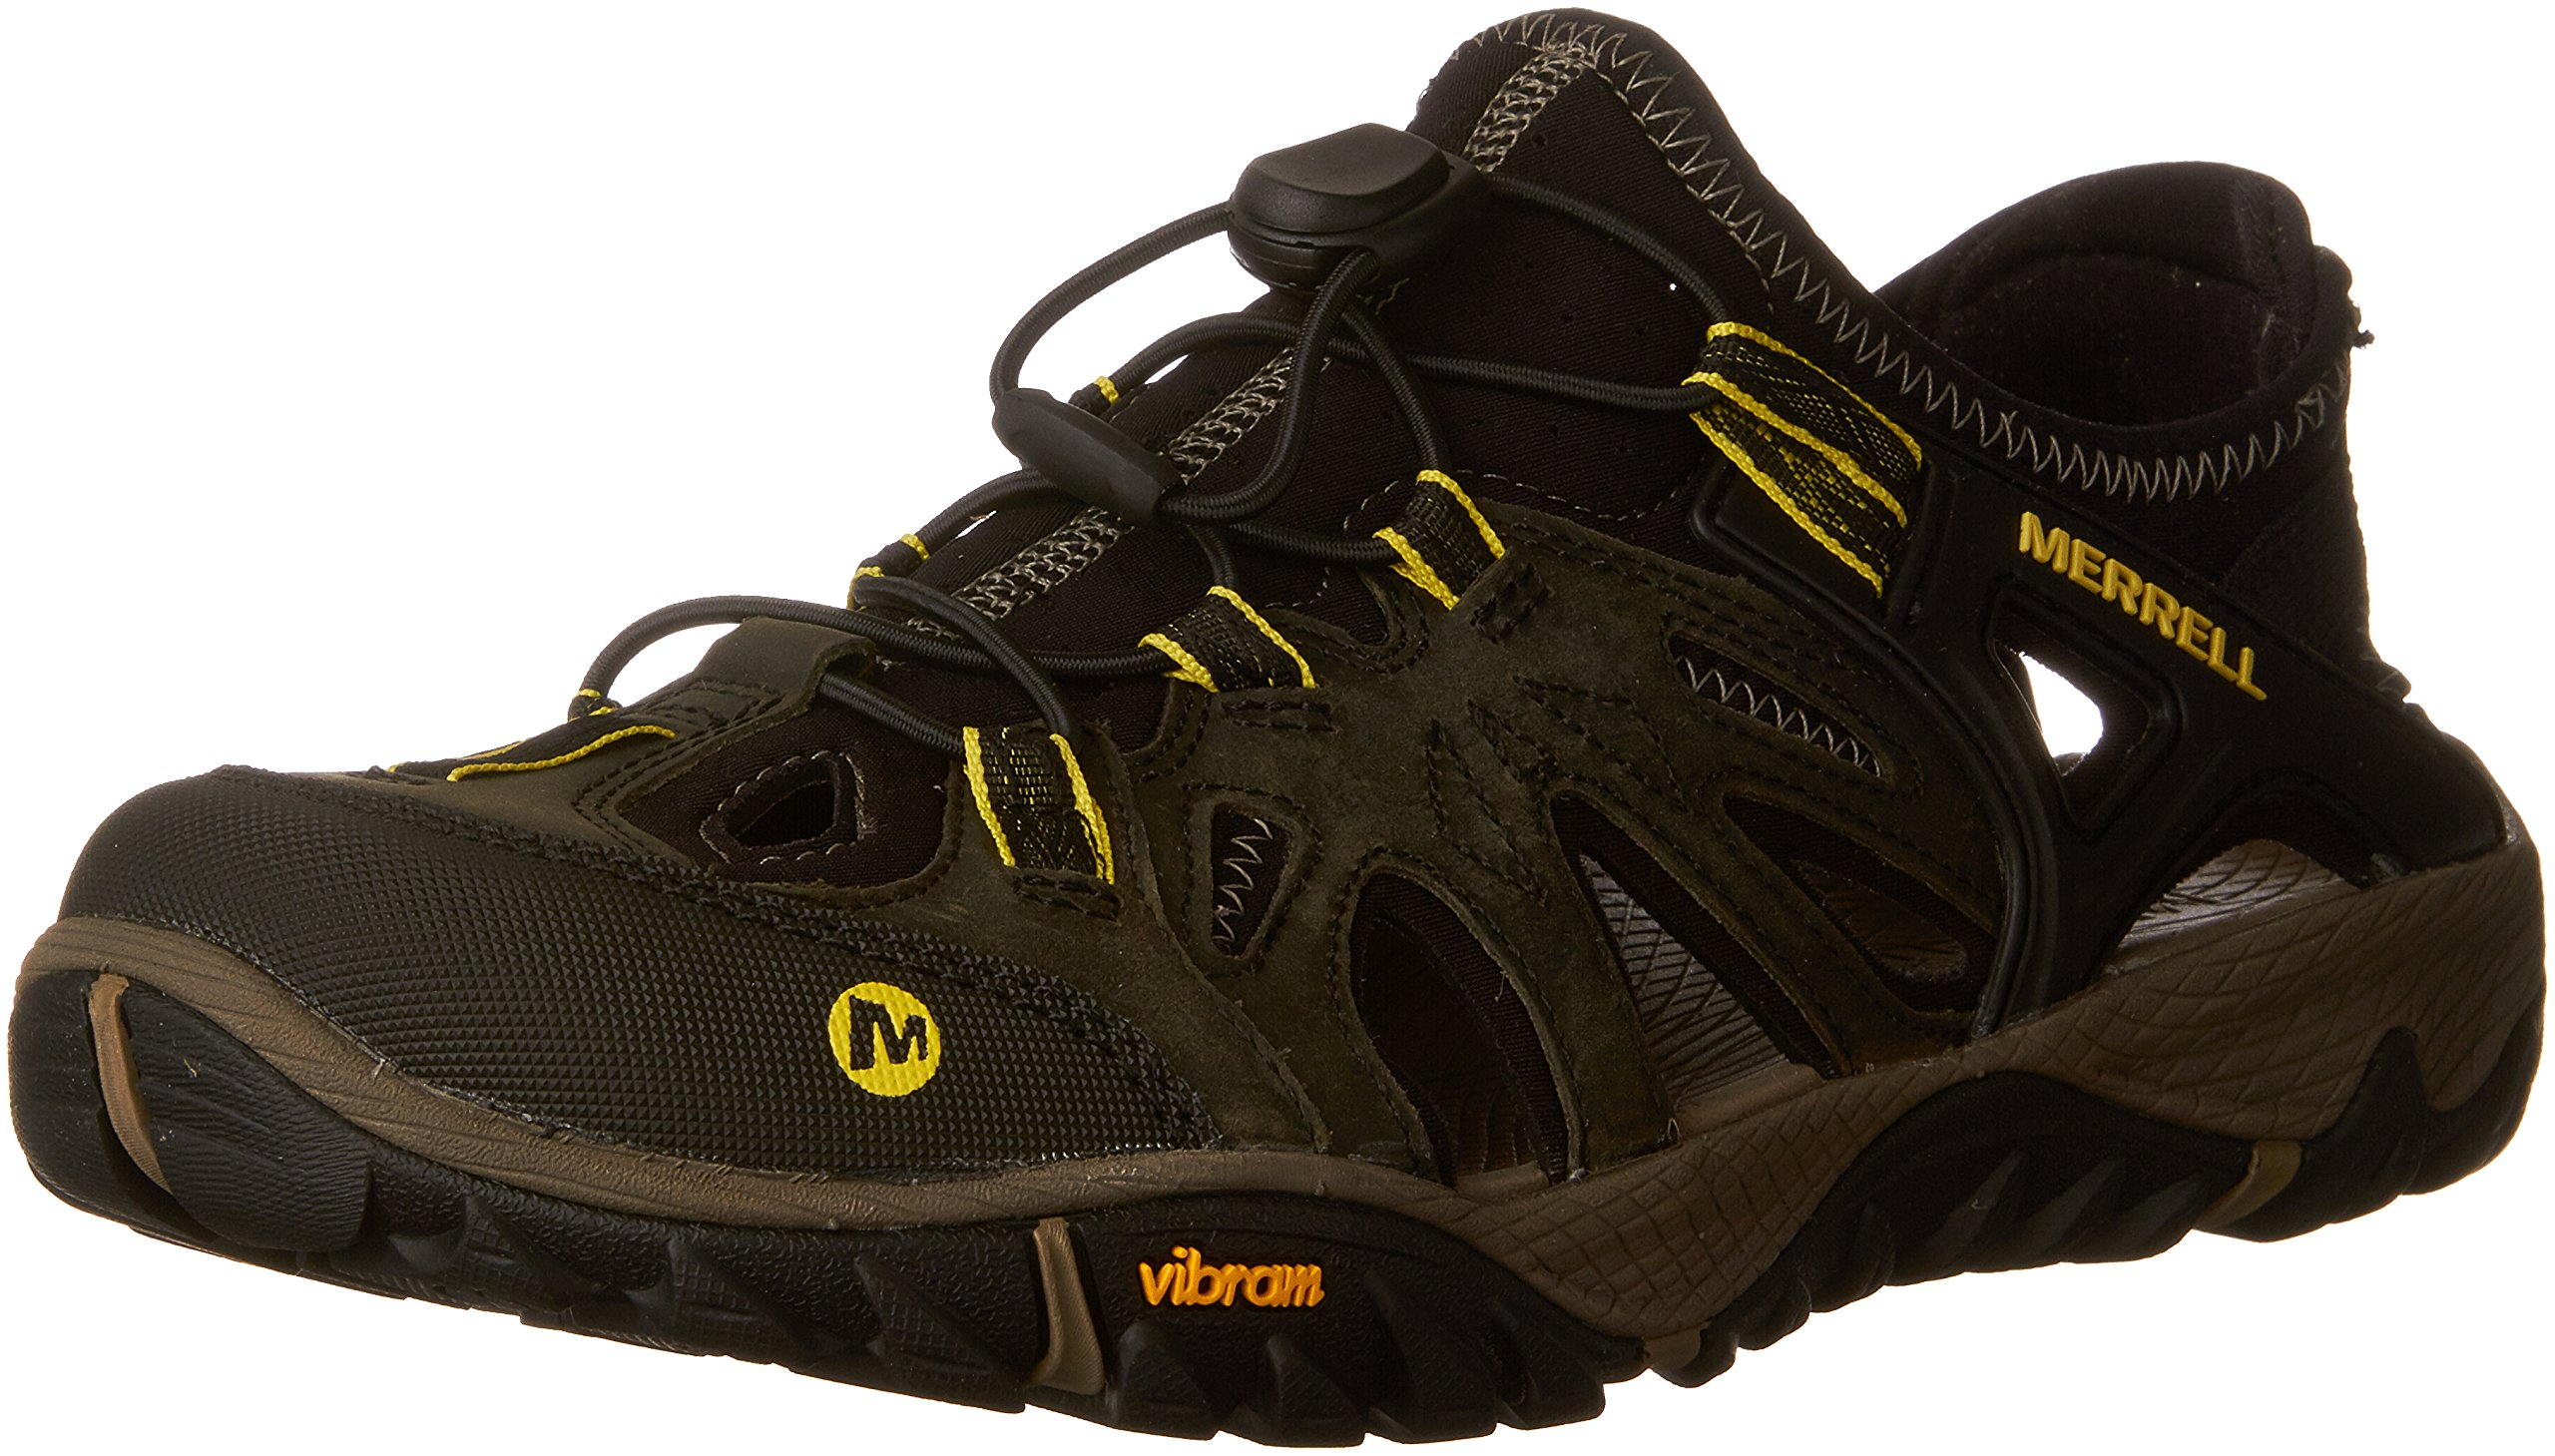 Merrell Men's All Out Blaze Sieve Hiking Shoe, Olive Night, 12 M US